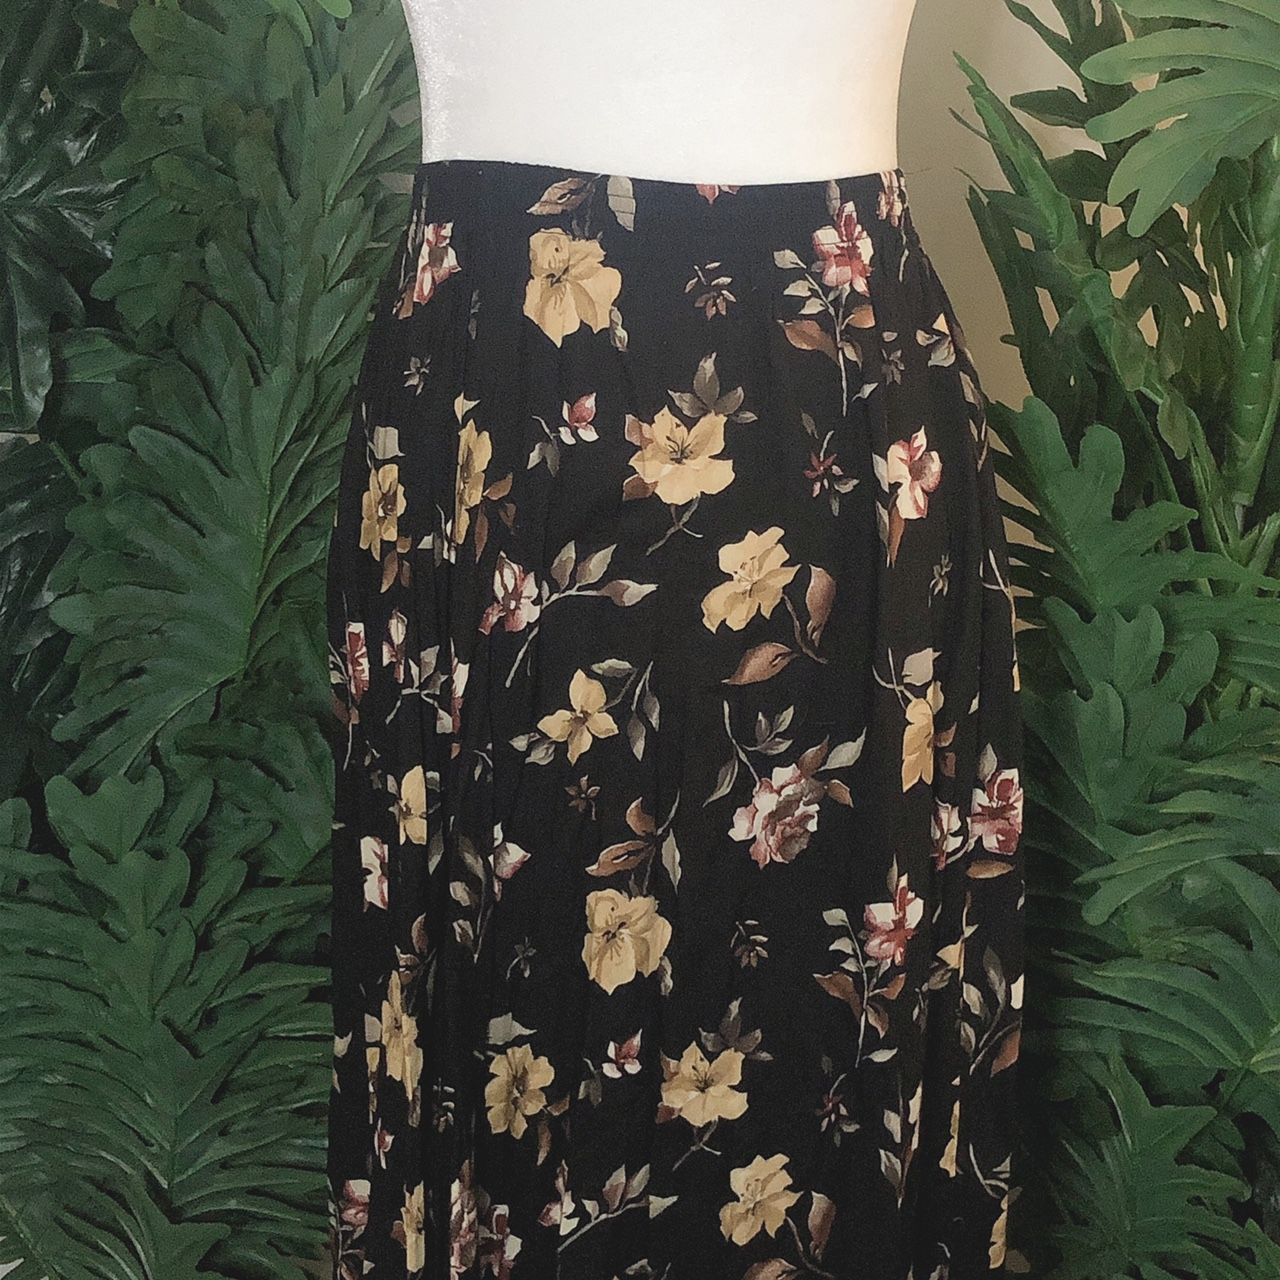 Product Image 1 - Y2k Floral Fairy Grunge Maxi